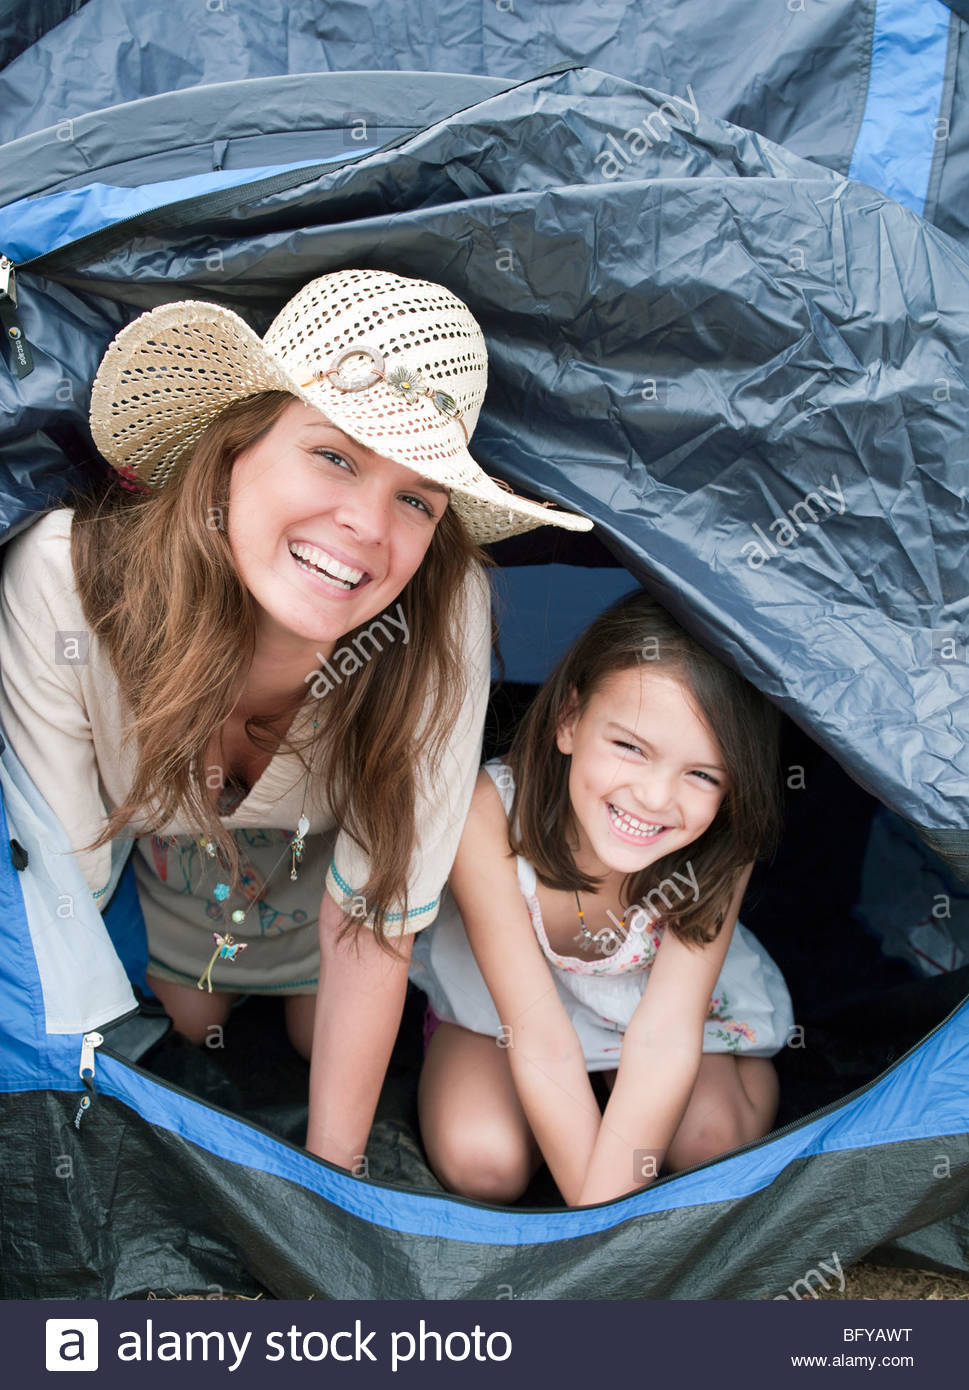 Mother and child emerging from tent - Stock Image